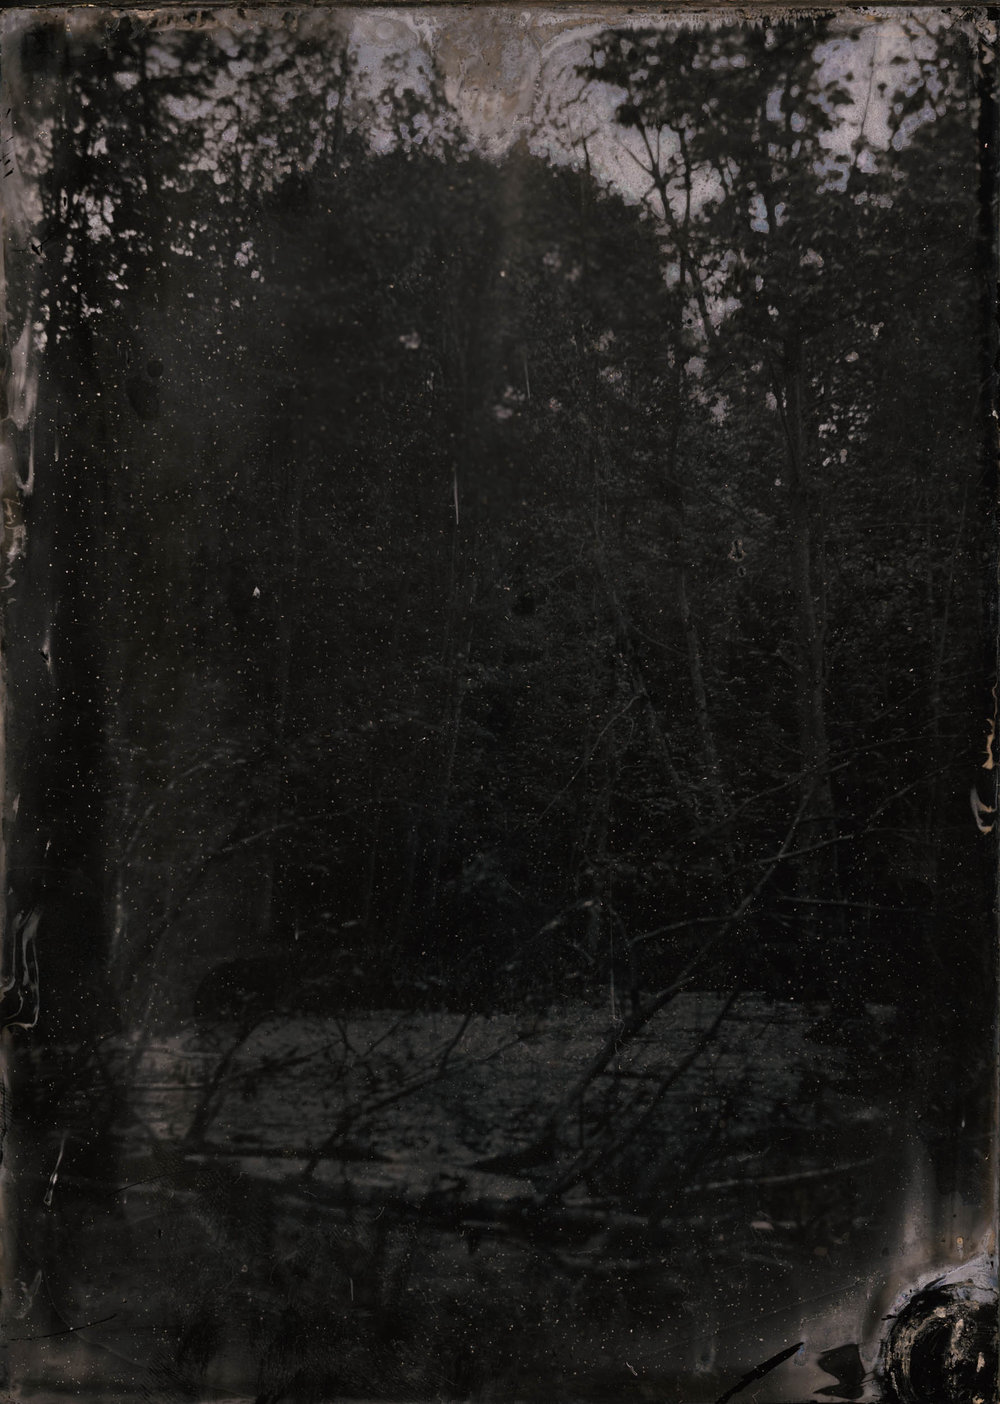 A Nest For Memory, ambrotype original, archival pigment print, 40 in. x 50 in., 2018